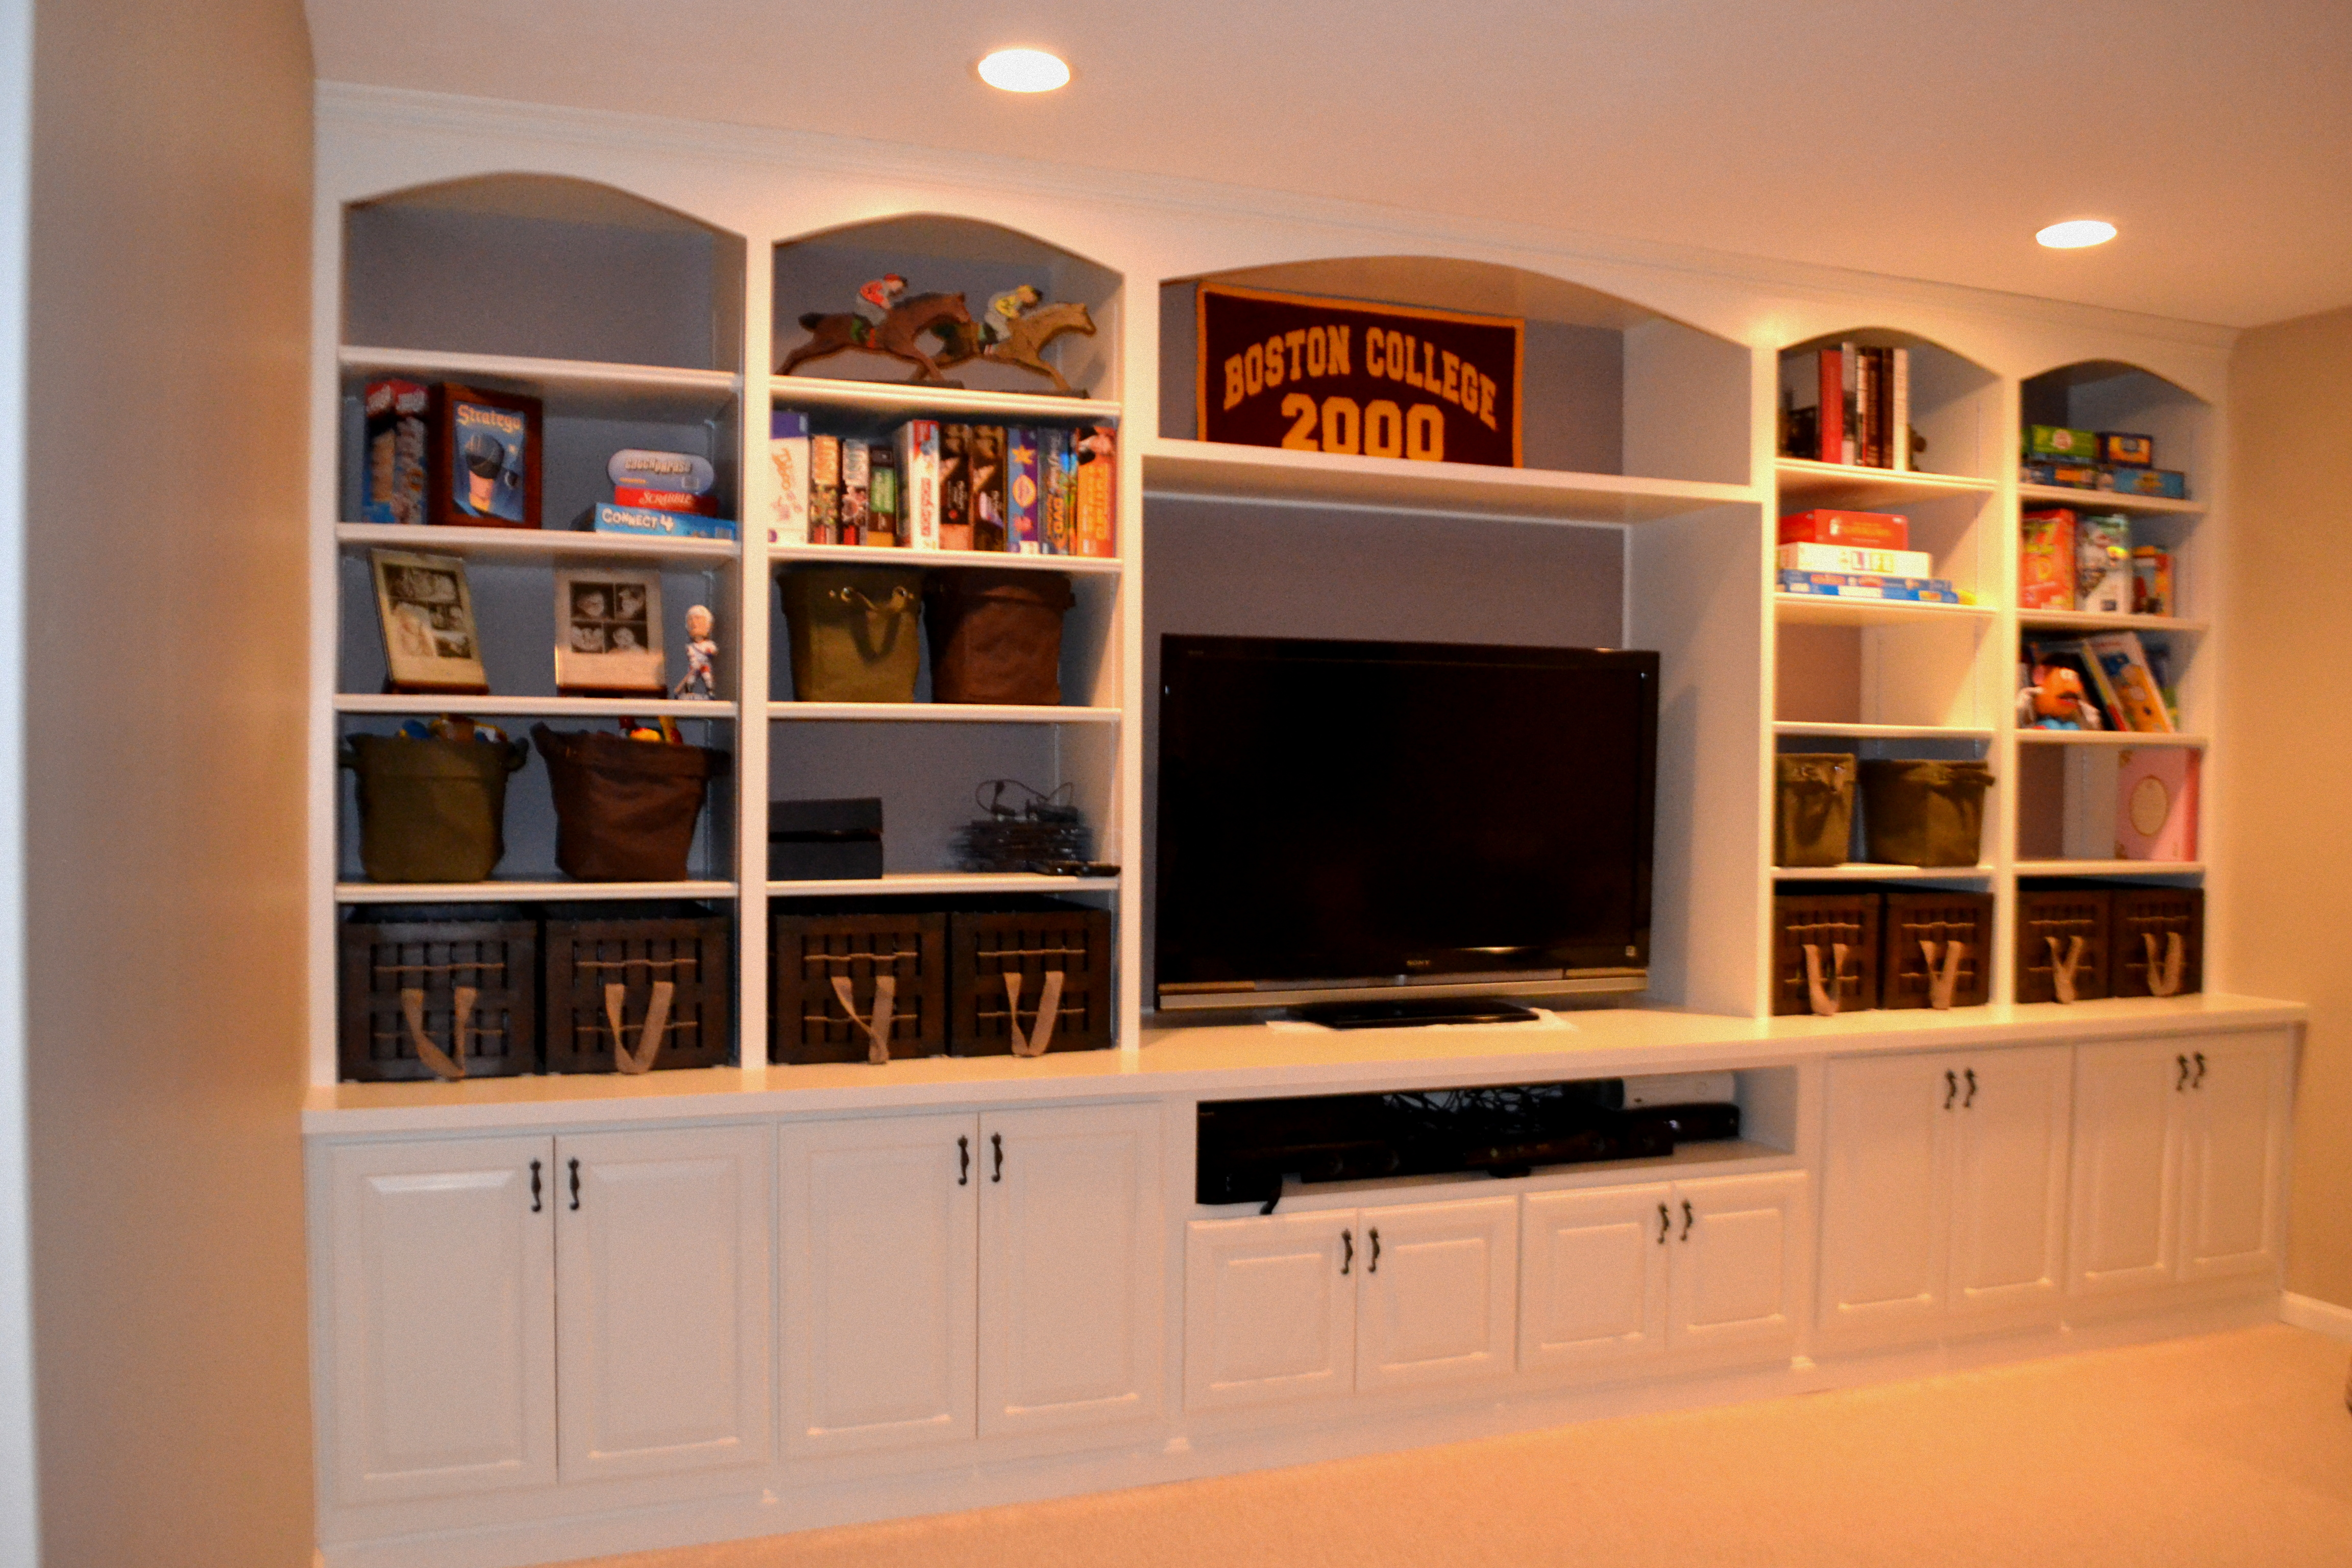 Custom Cabinetry Isn T Just For Your Kitchen Or Bathroom While Created Cabinets And Vanities Do Look Great You Can Also Benefit From Built Ins